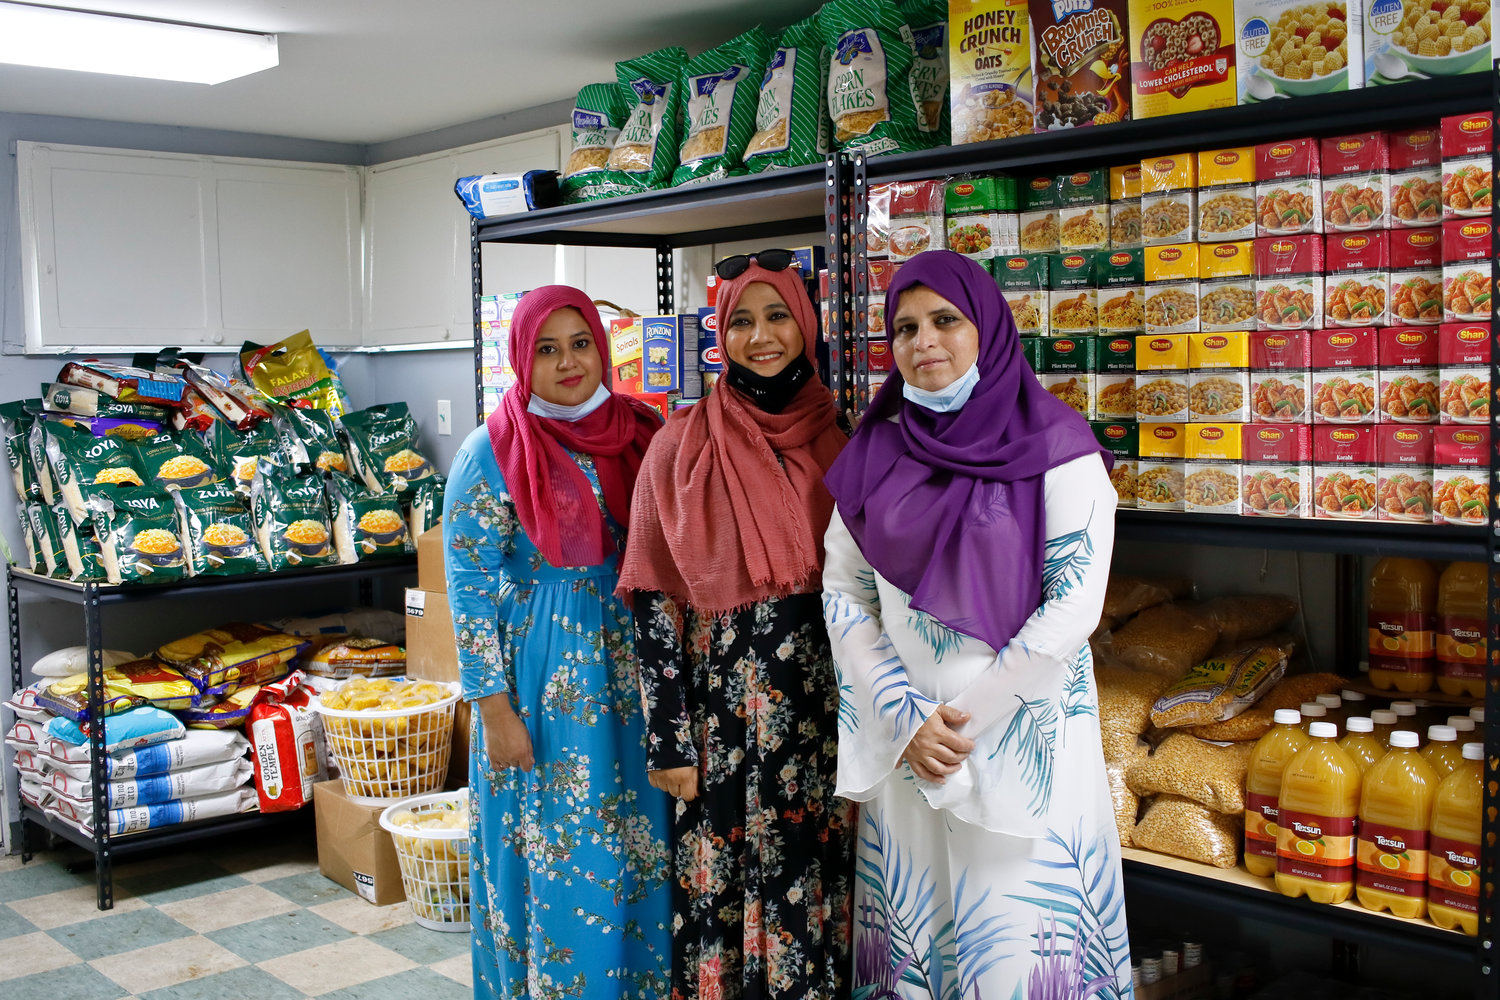 Masjid Hamza recently opened a food pantry in partnership with the Islamic Circle of North America. Shumaila Noor, far left, Ruhee Kapadia and Noshi Ahmed helped make it possible.